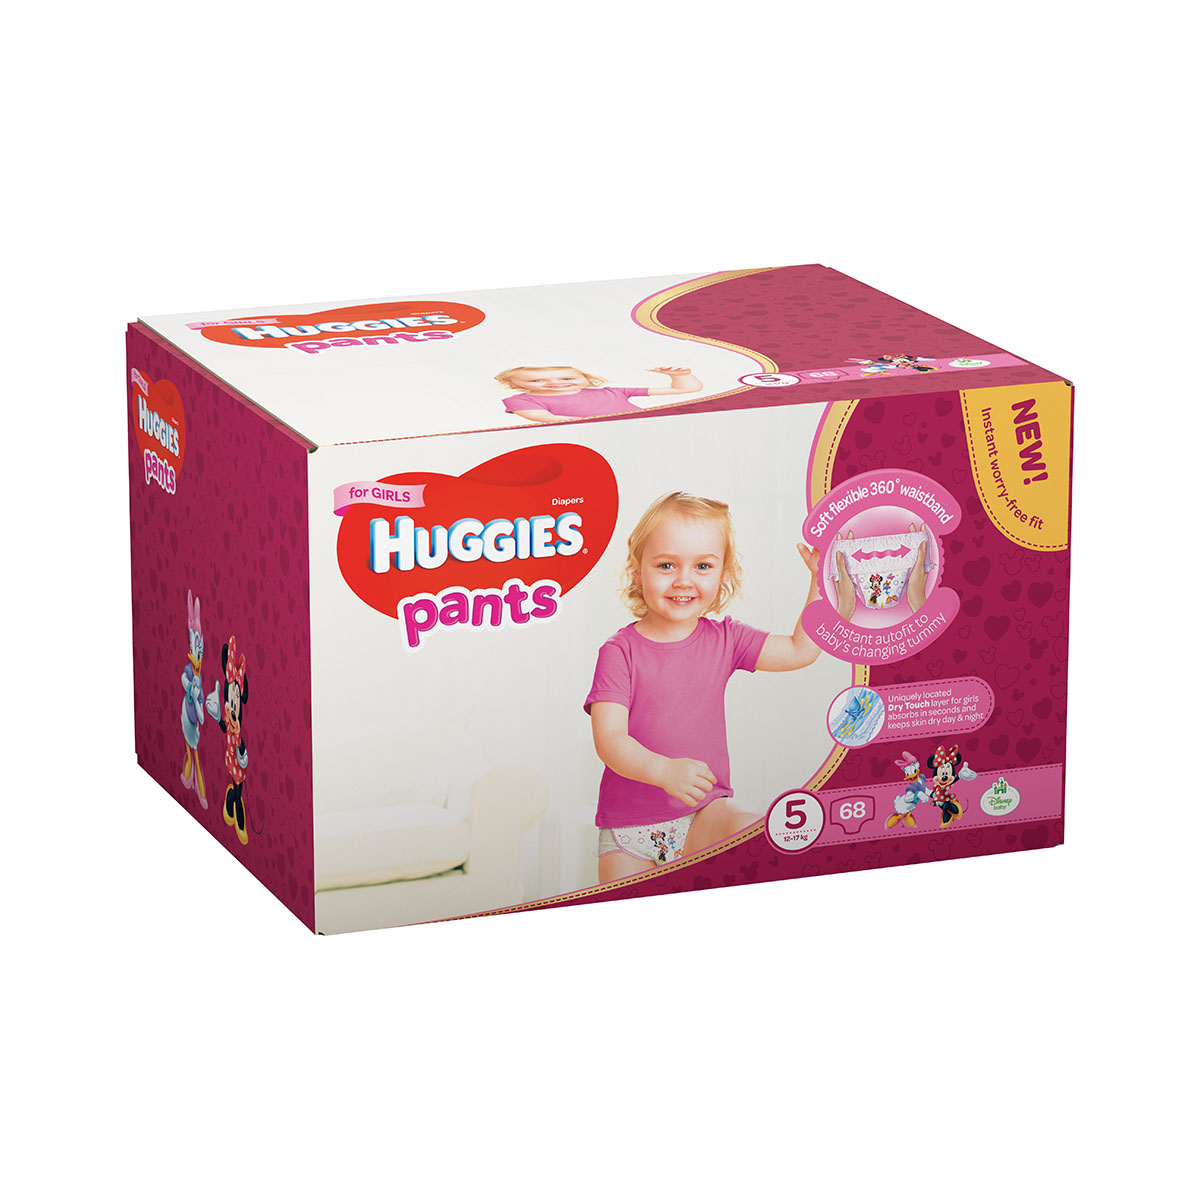 Scutece Huggies Pants Box Girls, Nr 5, 12 - 17 Kg, 68 buc imagine 2021